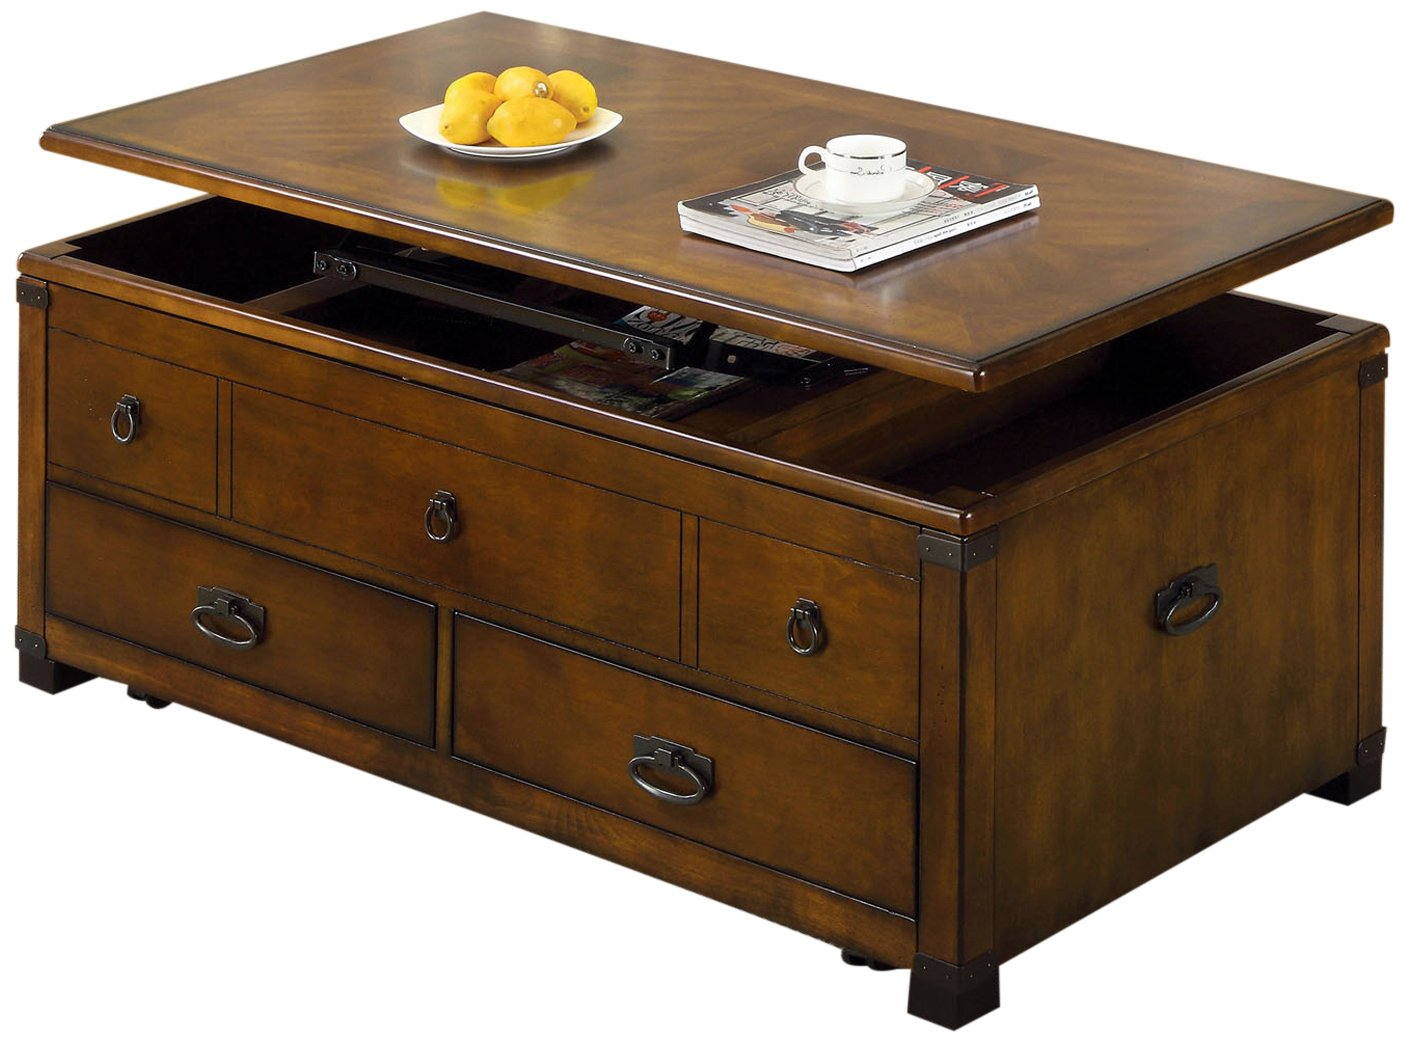 America Fortsworth Coffee Table with Lift Top Storage image